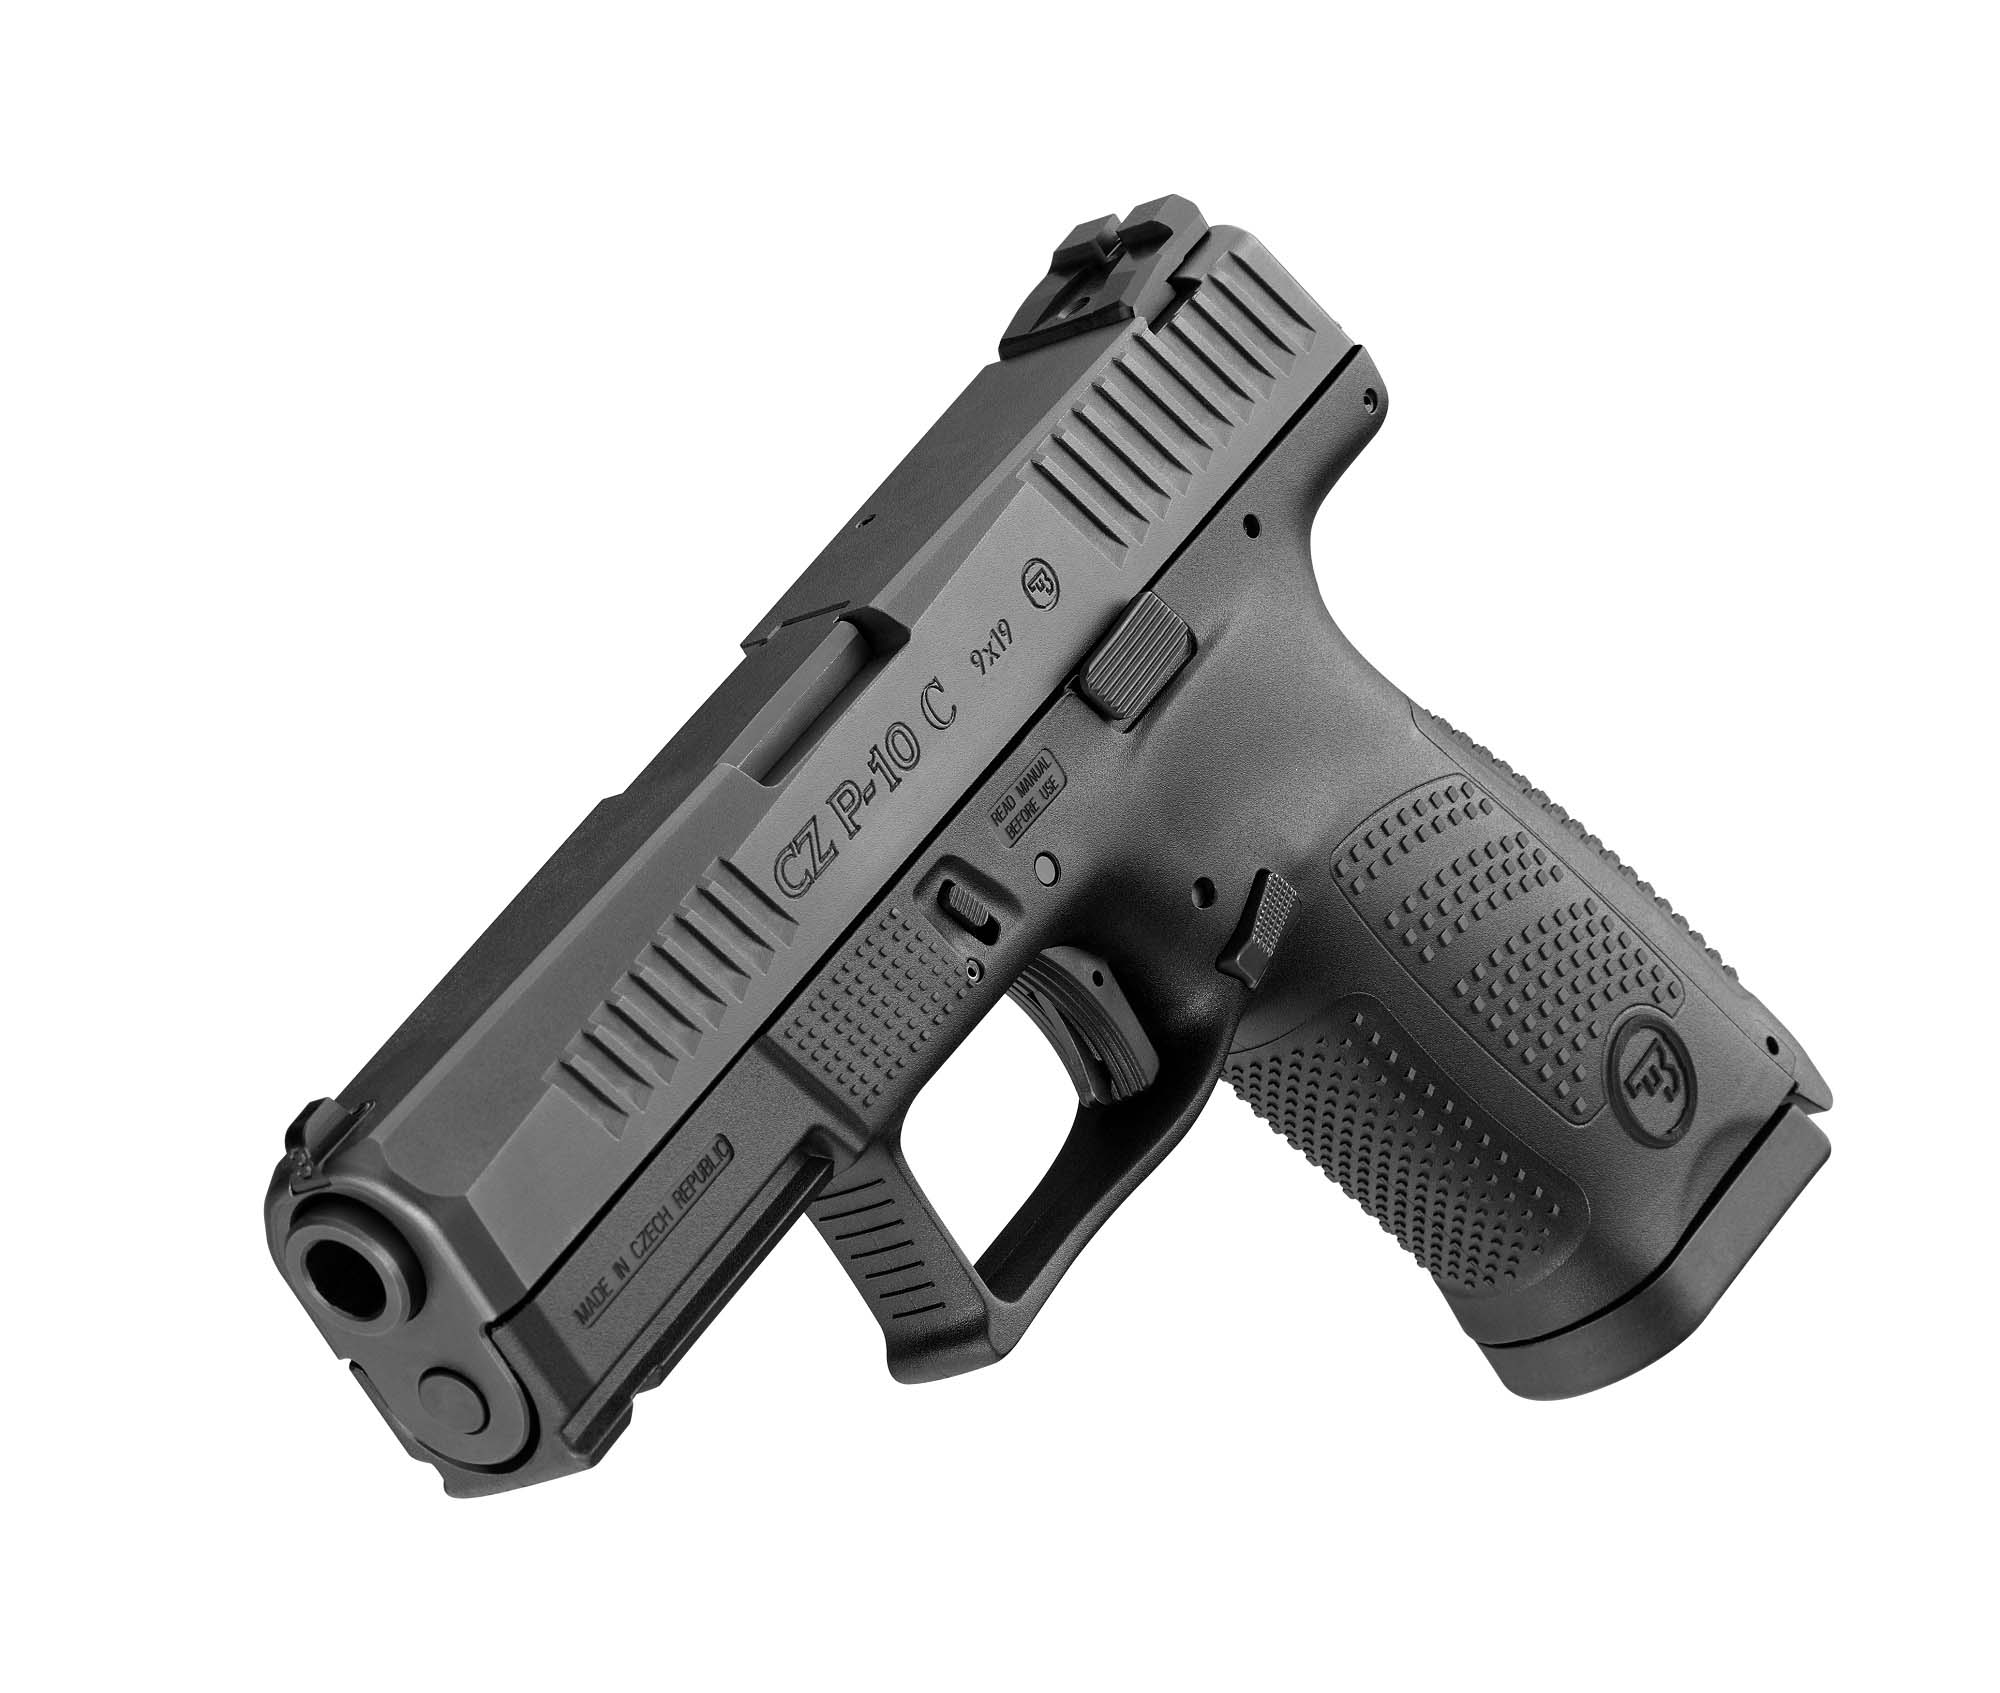 Best Pistol For Protection At Home